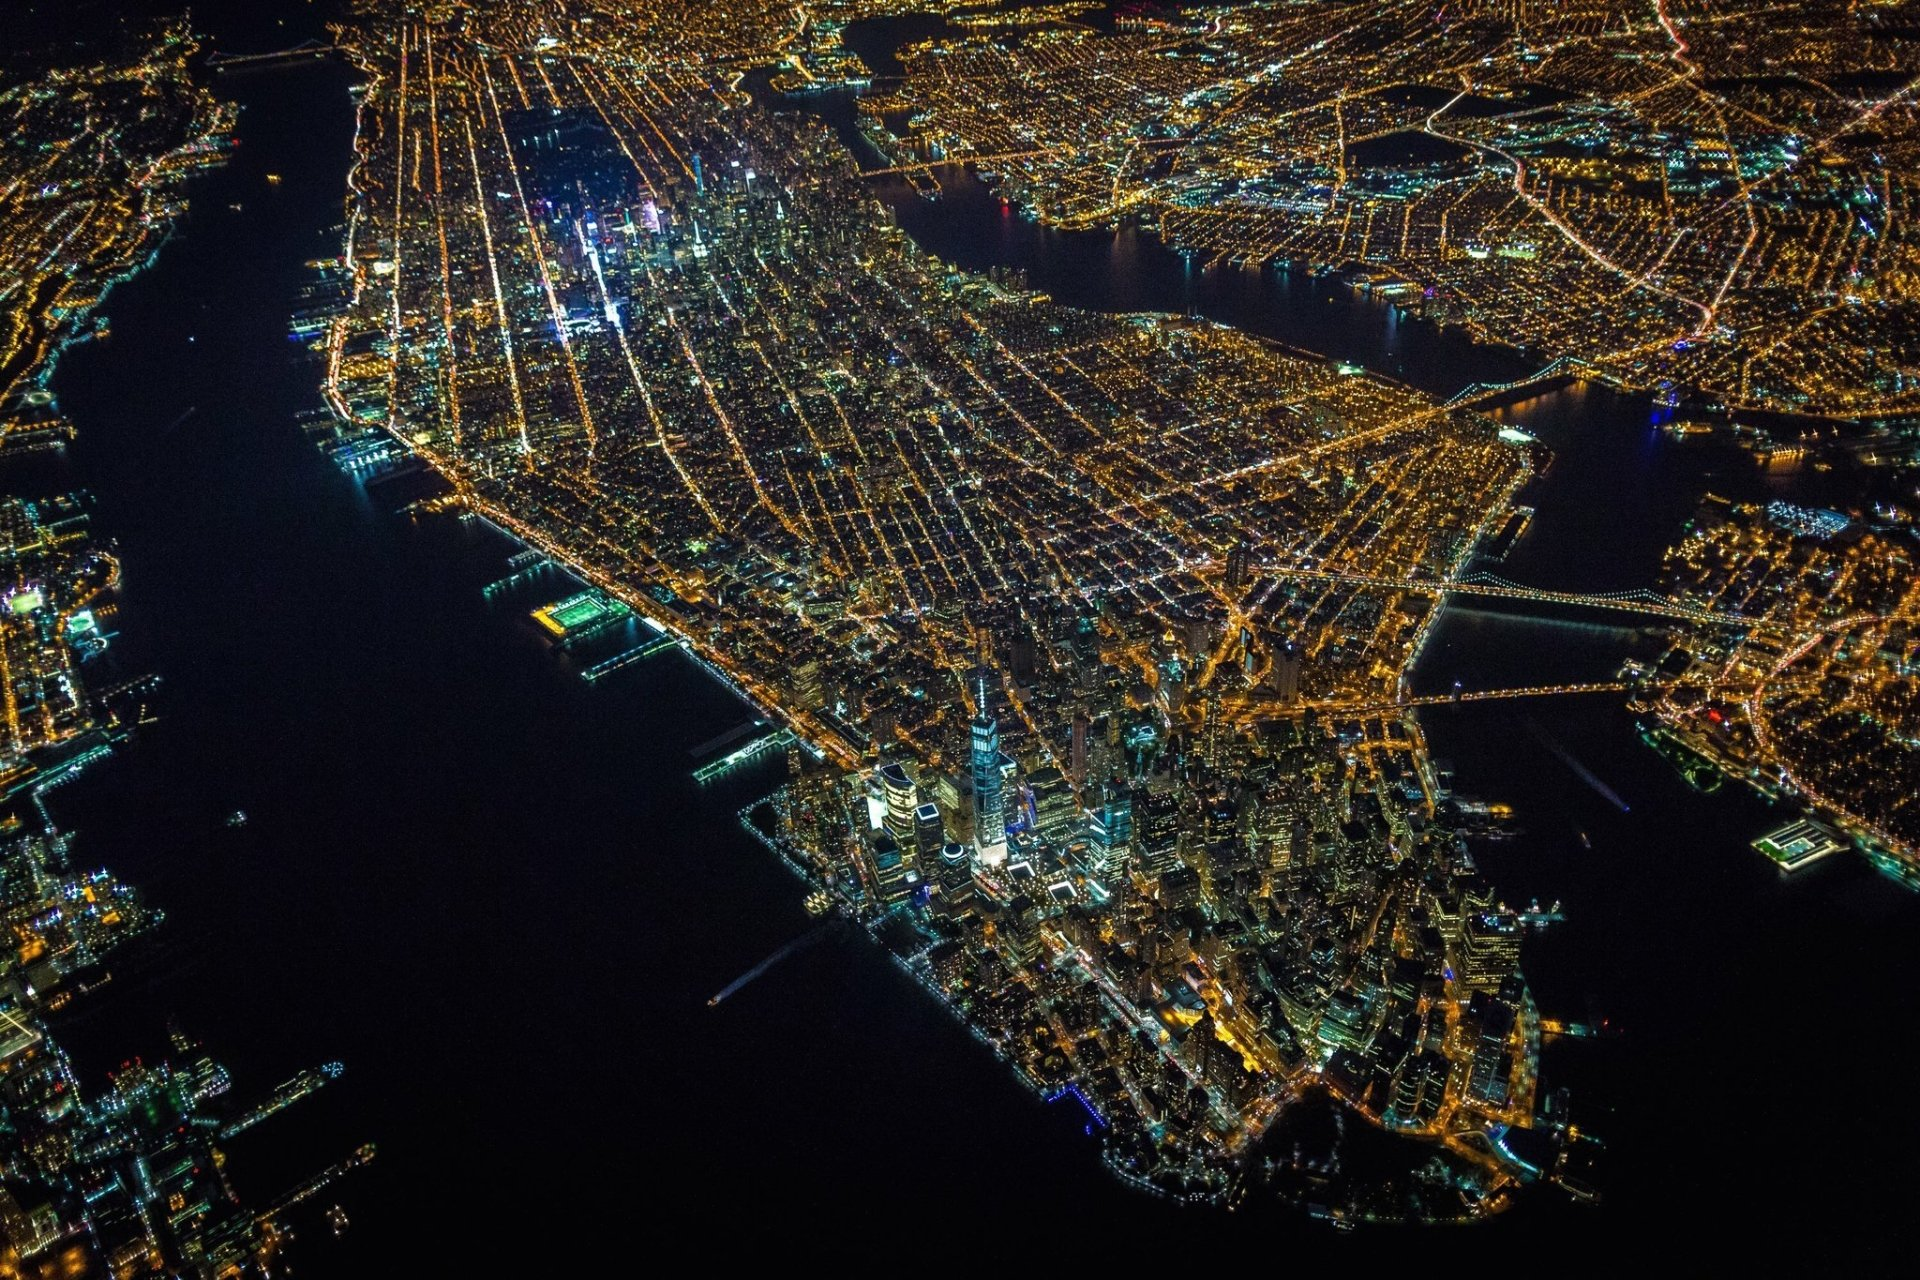 Man Made - Manhattan  New York USA City Night Cityscape Light Wallpaper